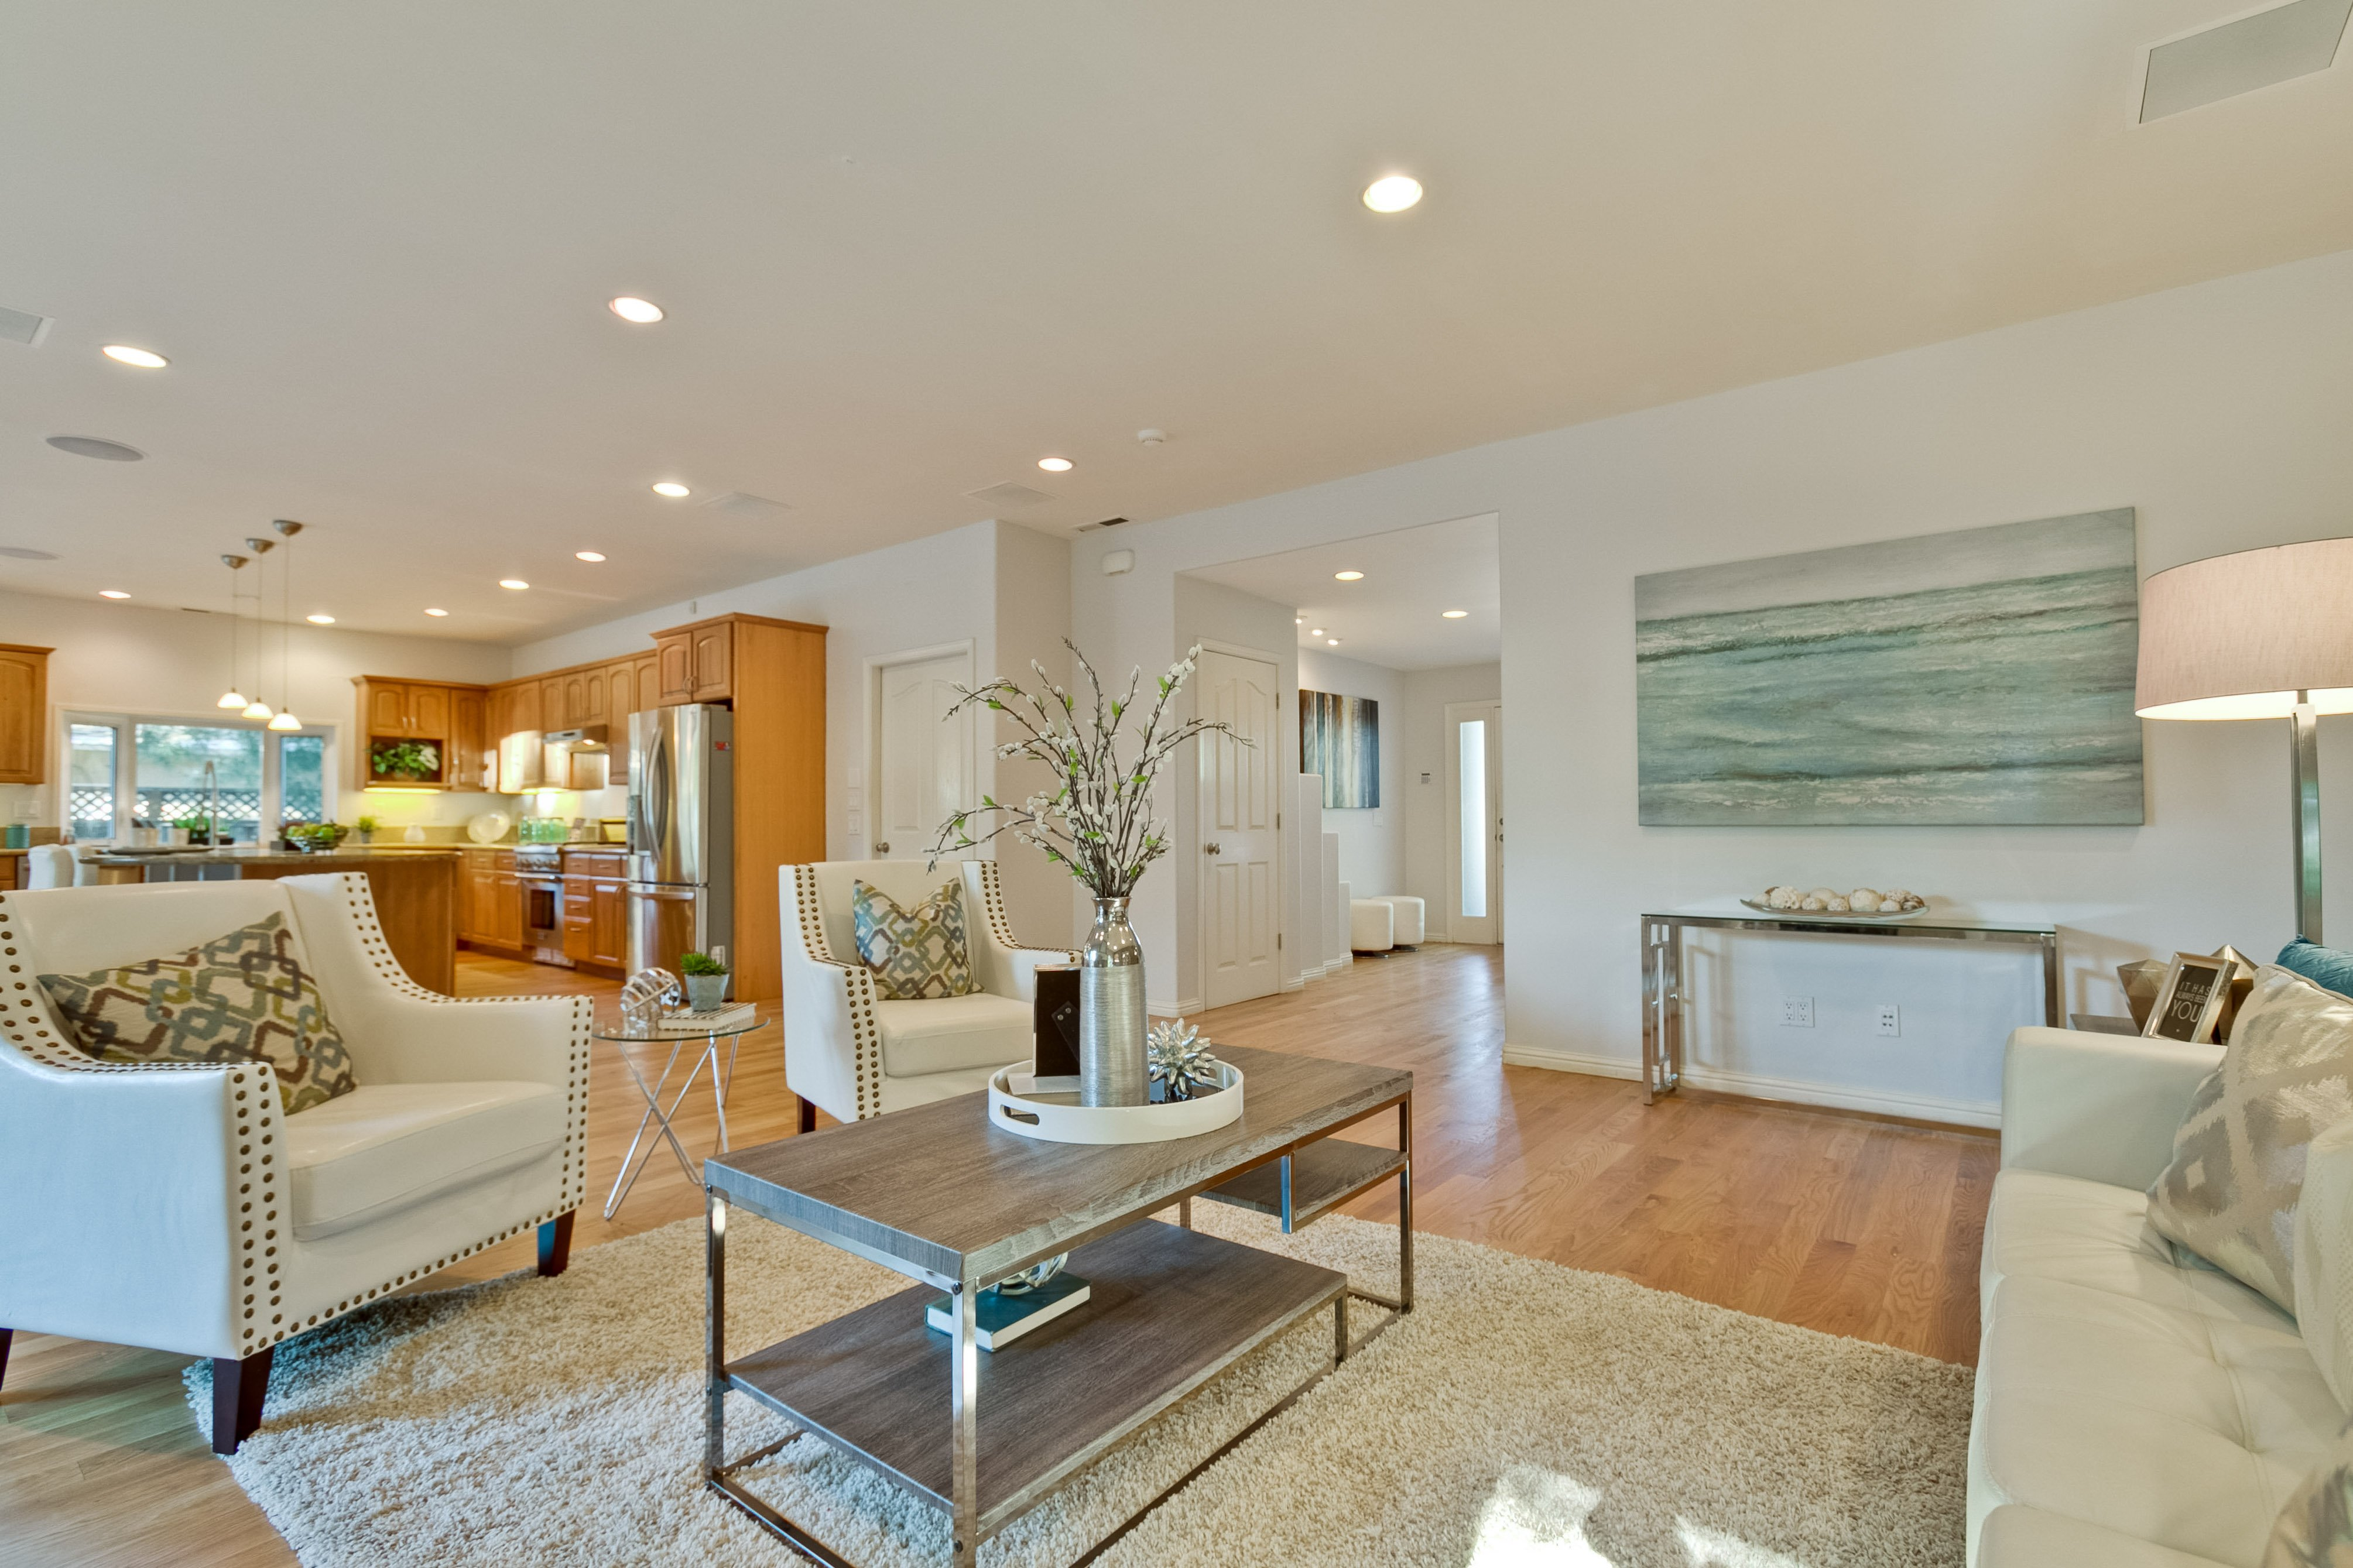 staged living room in real estate property